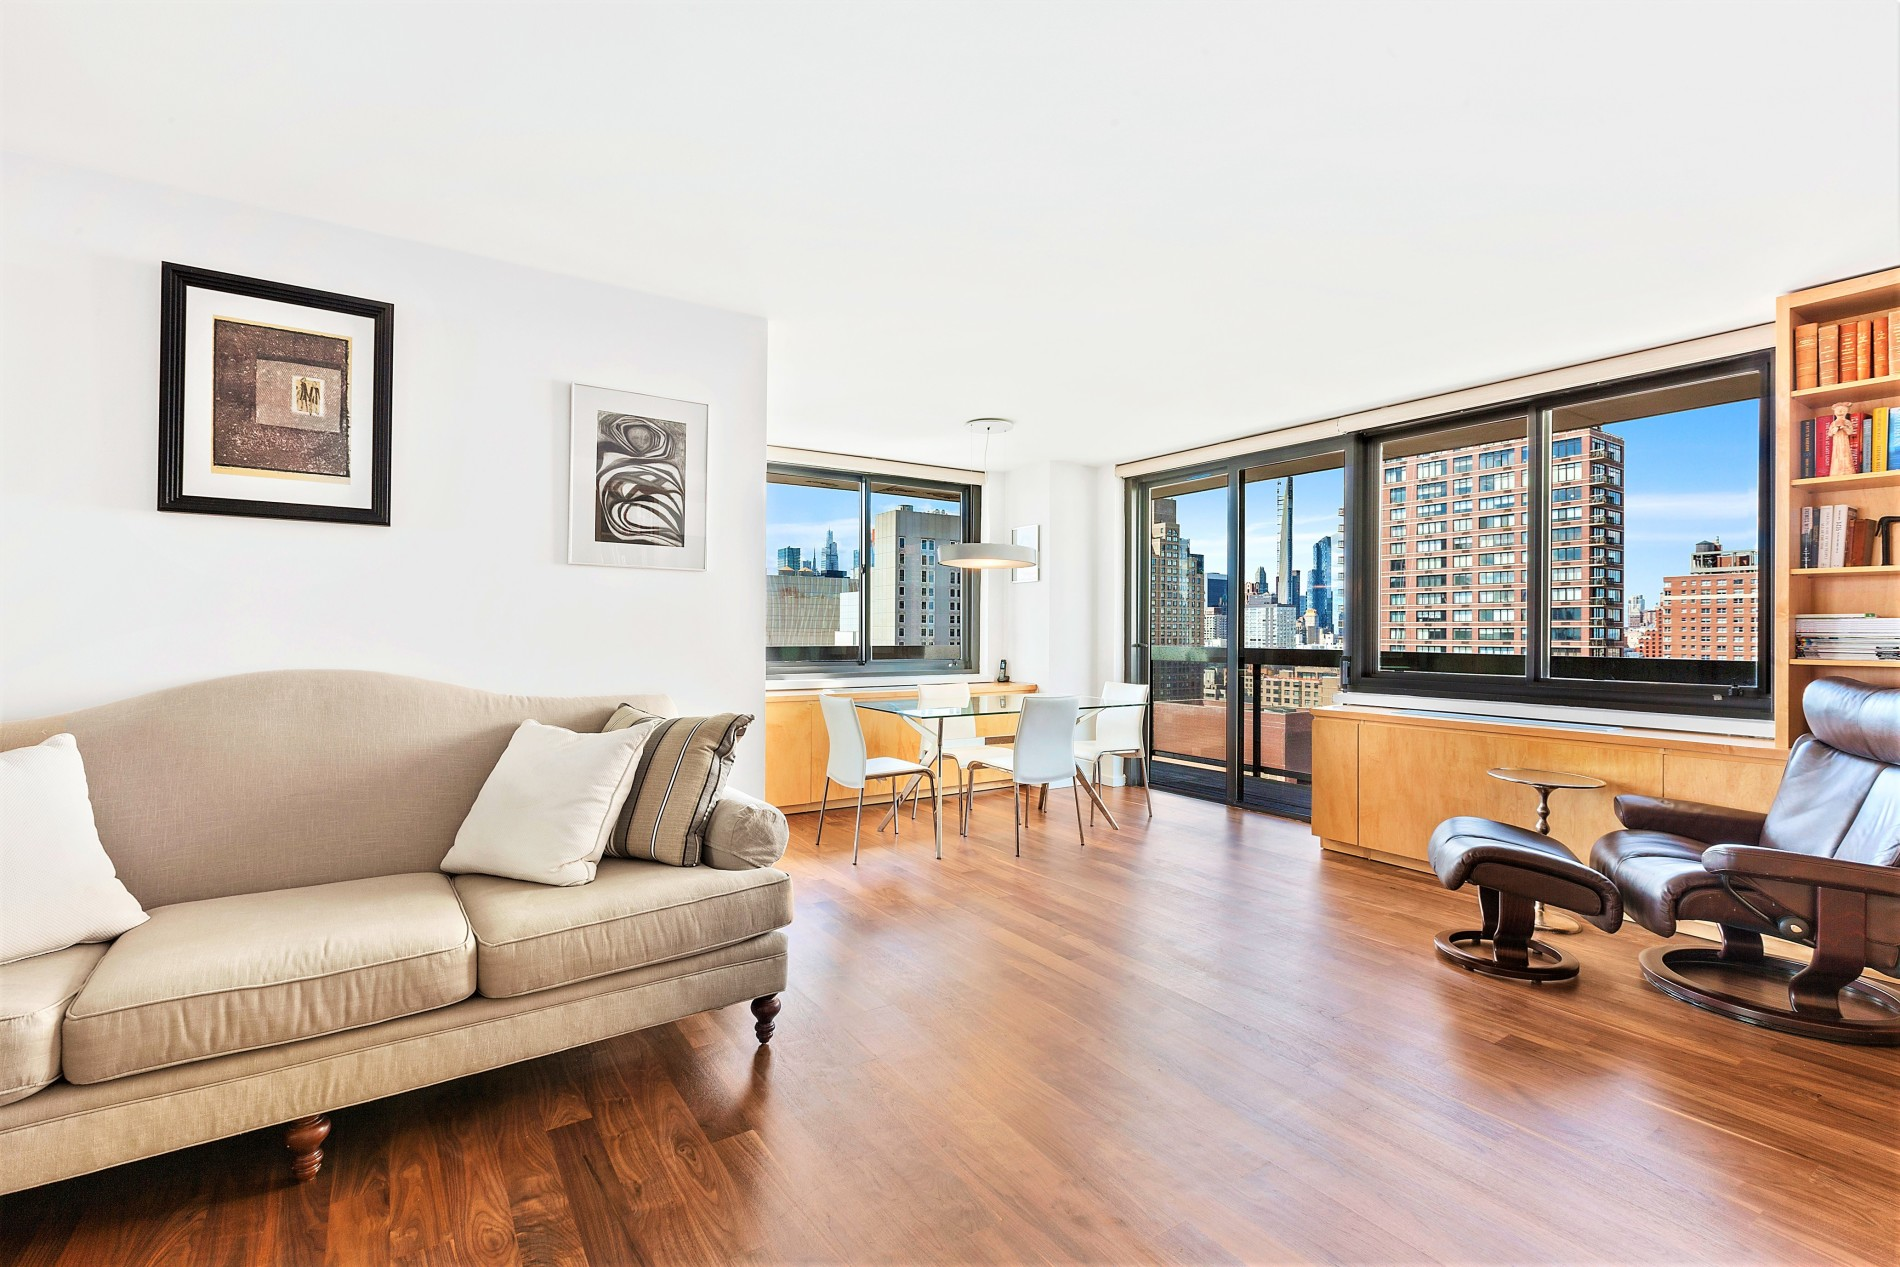 As the 515 East 72nd Street owner/residents and brokers, we are delighted to offer this lovely 2-bedroom/2-bath home featuring outstanding southern and western views from the 28th floor with a private wraparound balcony. With your custom kitchen featuring walnut and lacquered cabinetry, Corian counter tops, Basaltina lava stone back-splash, and top-of-the-line appliances such as a Miele dishwasher, Thermador stove and a new Liebherr refrigerator, you will enjoy your morning cup of coffee at your dining table or sitting outside on your lovely wrap-around balcony. Generous closets are located throughout, including one that stores a new Bosch washer and dryer. The bathroom walls are made of custom-designed crema d'orcia bamboo-textured and honed Piombo tiles with Watermark fixtures. The floor plan has been designed to maximize privacy with the master bedroom, which boasts an en-suite bathroom, split from the second bedroom. Special features are found throughout the apartment, including custom cabinetry and the mirrored living room wall.  (Please note that real estate taxes shown are net of NYC condo primary resident abatement  also there is a monthly capital assessment of $463 through September 2021 to fund the renovation of the common spaces).515 East 72nd Street offers 40,000 square feet of exclusive resident-only world-class spa living with amenities which include a half-acre private park, state-of-the-art fitness center with Peloton bikes, 56' indoor pool, 2 hot tubs, locker rooms with sauna and steam rooms, daily scheduled group fitness classes, Jodi's Gym play space with classes, art and activity room with classes, piano lounge, 24/7 coffee bar adjoining our piano room/lounge, squash, racquetball and basketball court, yoga/pilates/ballet room, game & video lounge with large-screen television, outdoor movies, cooking classes, wine tastings, complimentary resident parties and more! In our private Elements Spa residents can book massages, facials and manicures. Our 